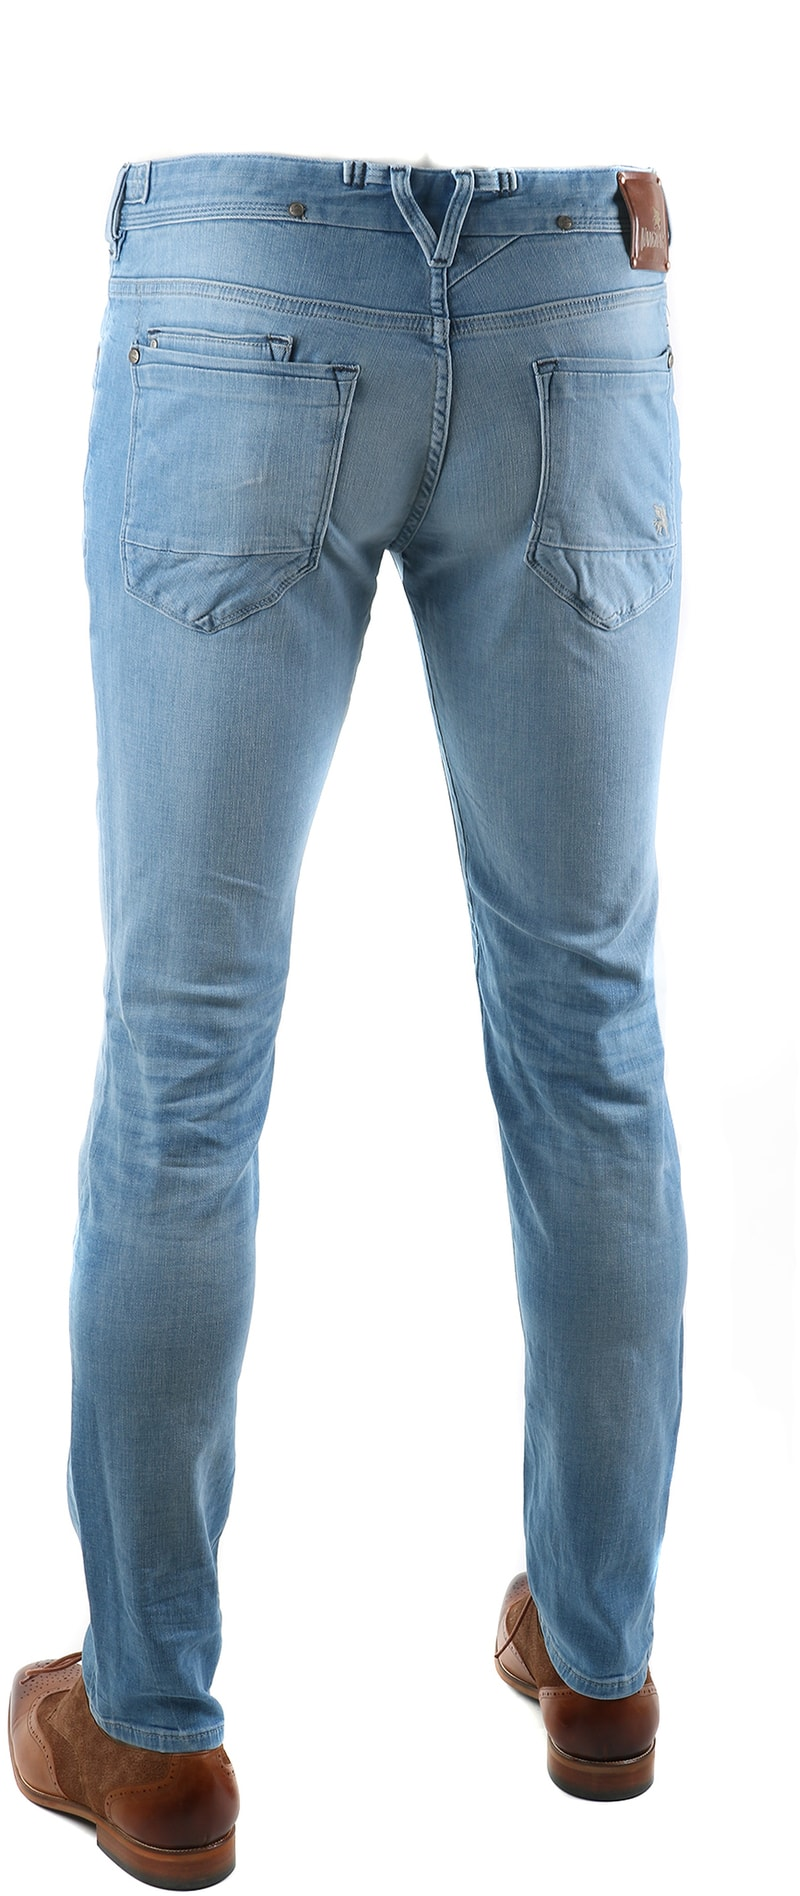 Vanguard V8 Racer Jeans Electric Blue photo 4